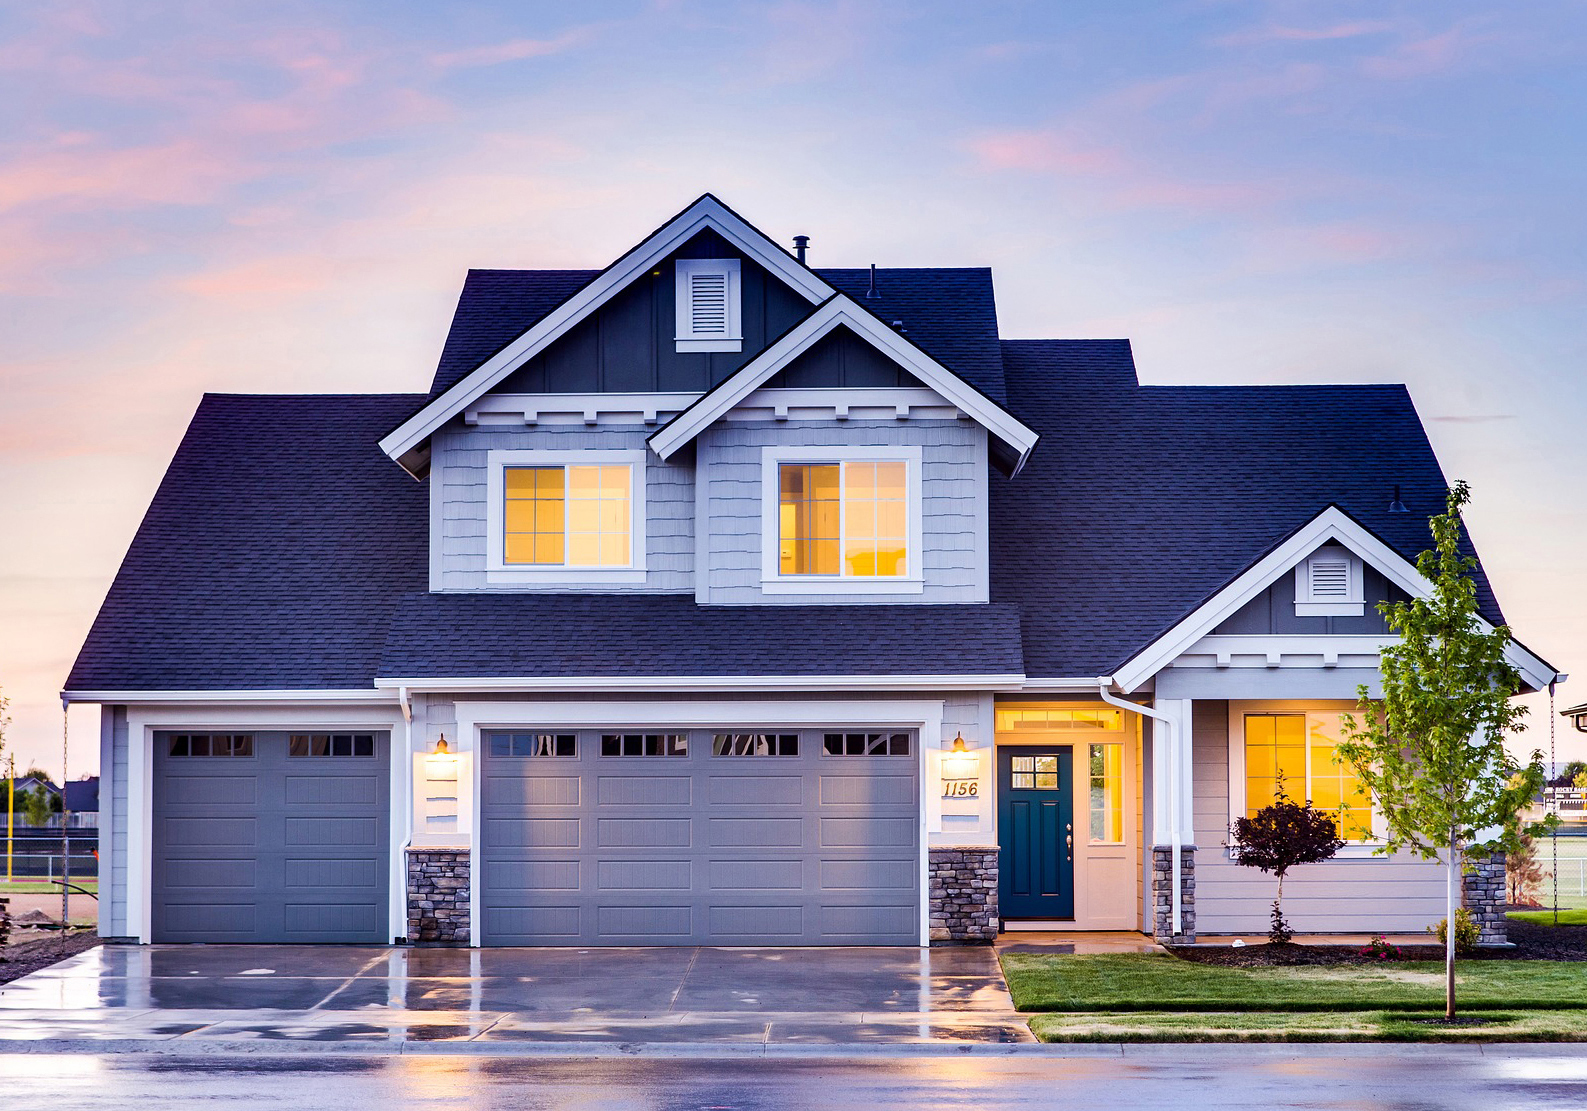 affordable home insurance, insurance for my house